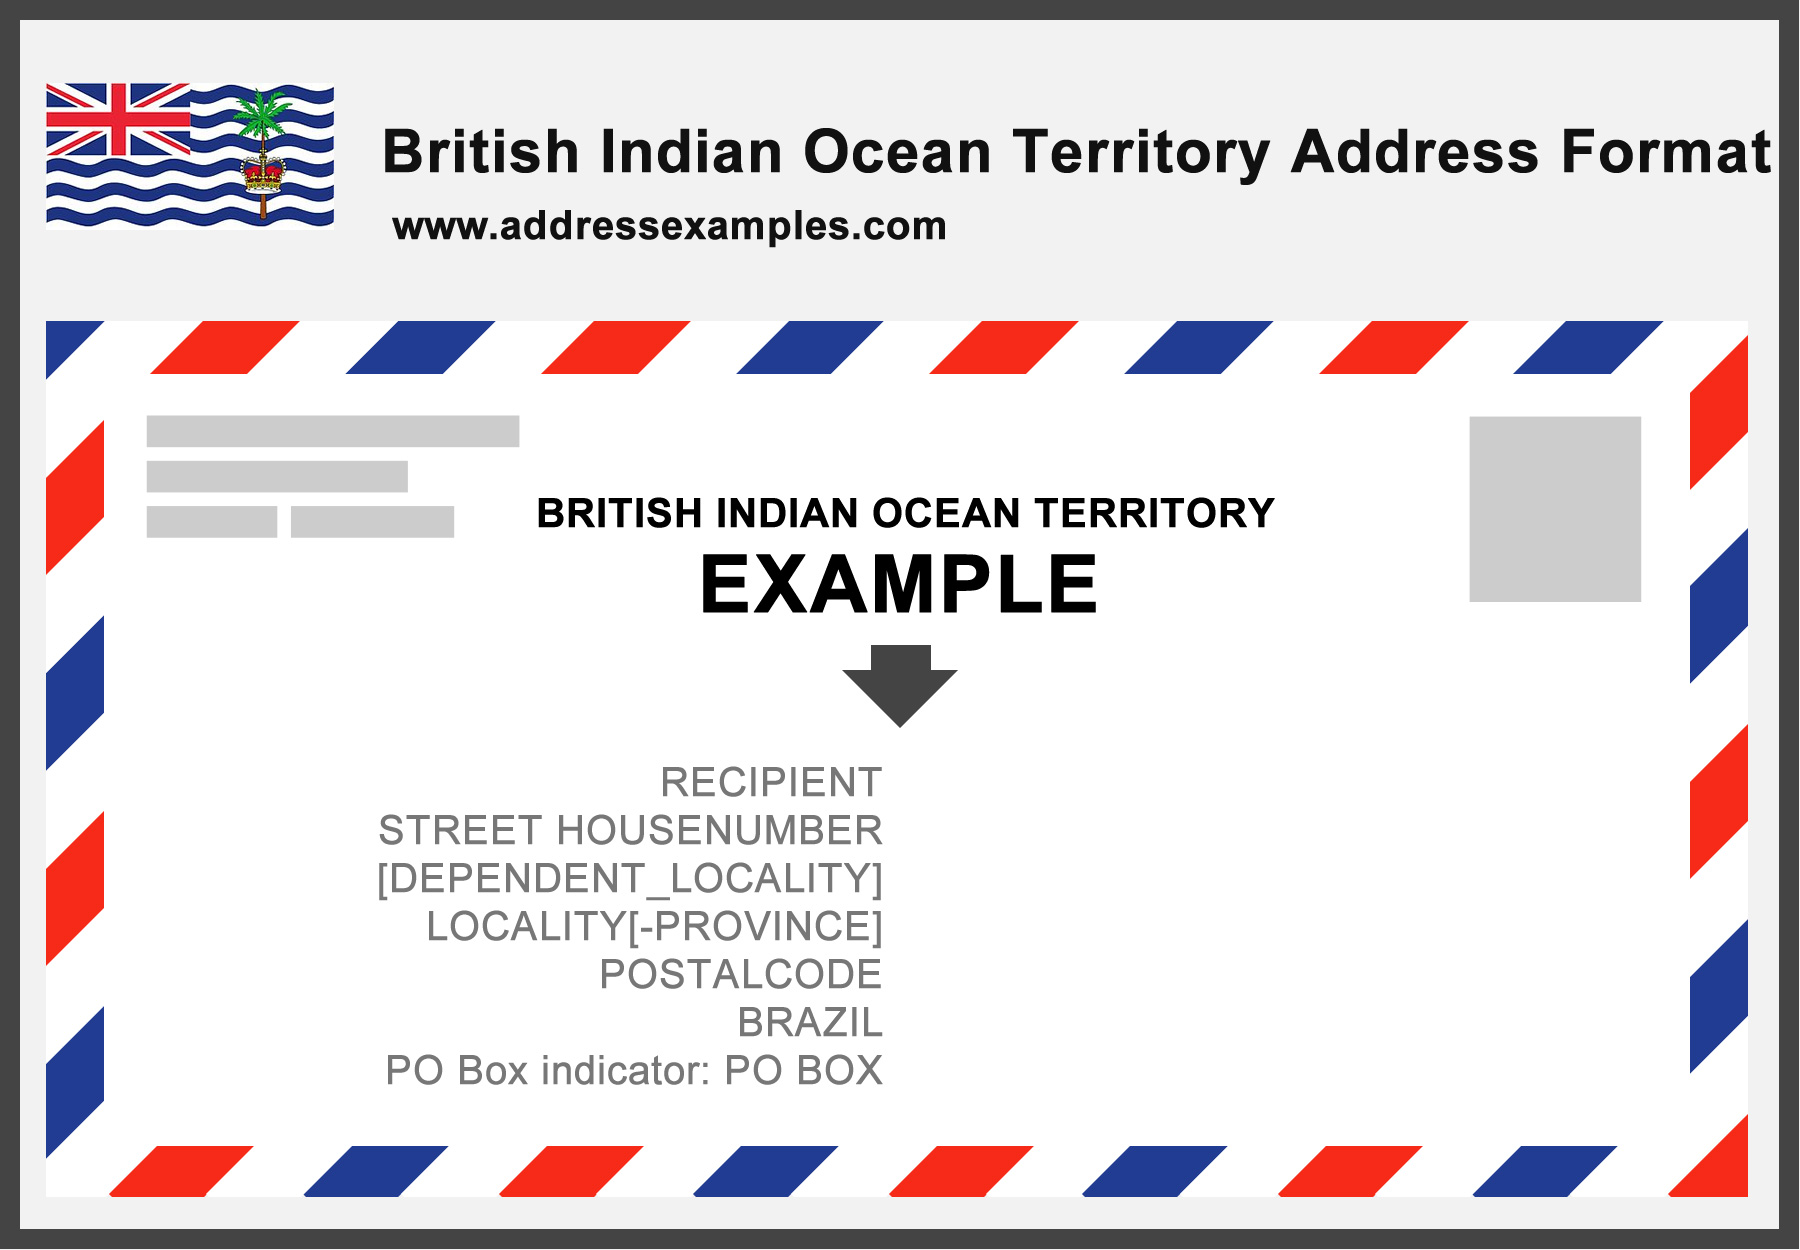 British Indian Ocean Territory Address Format